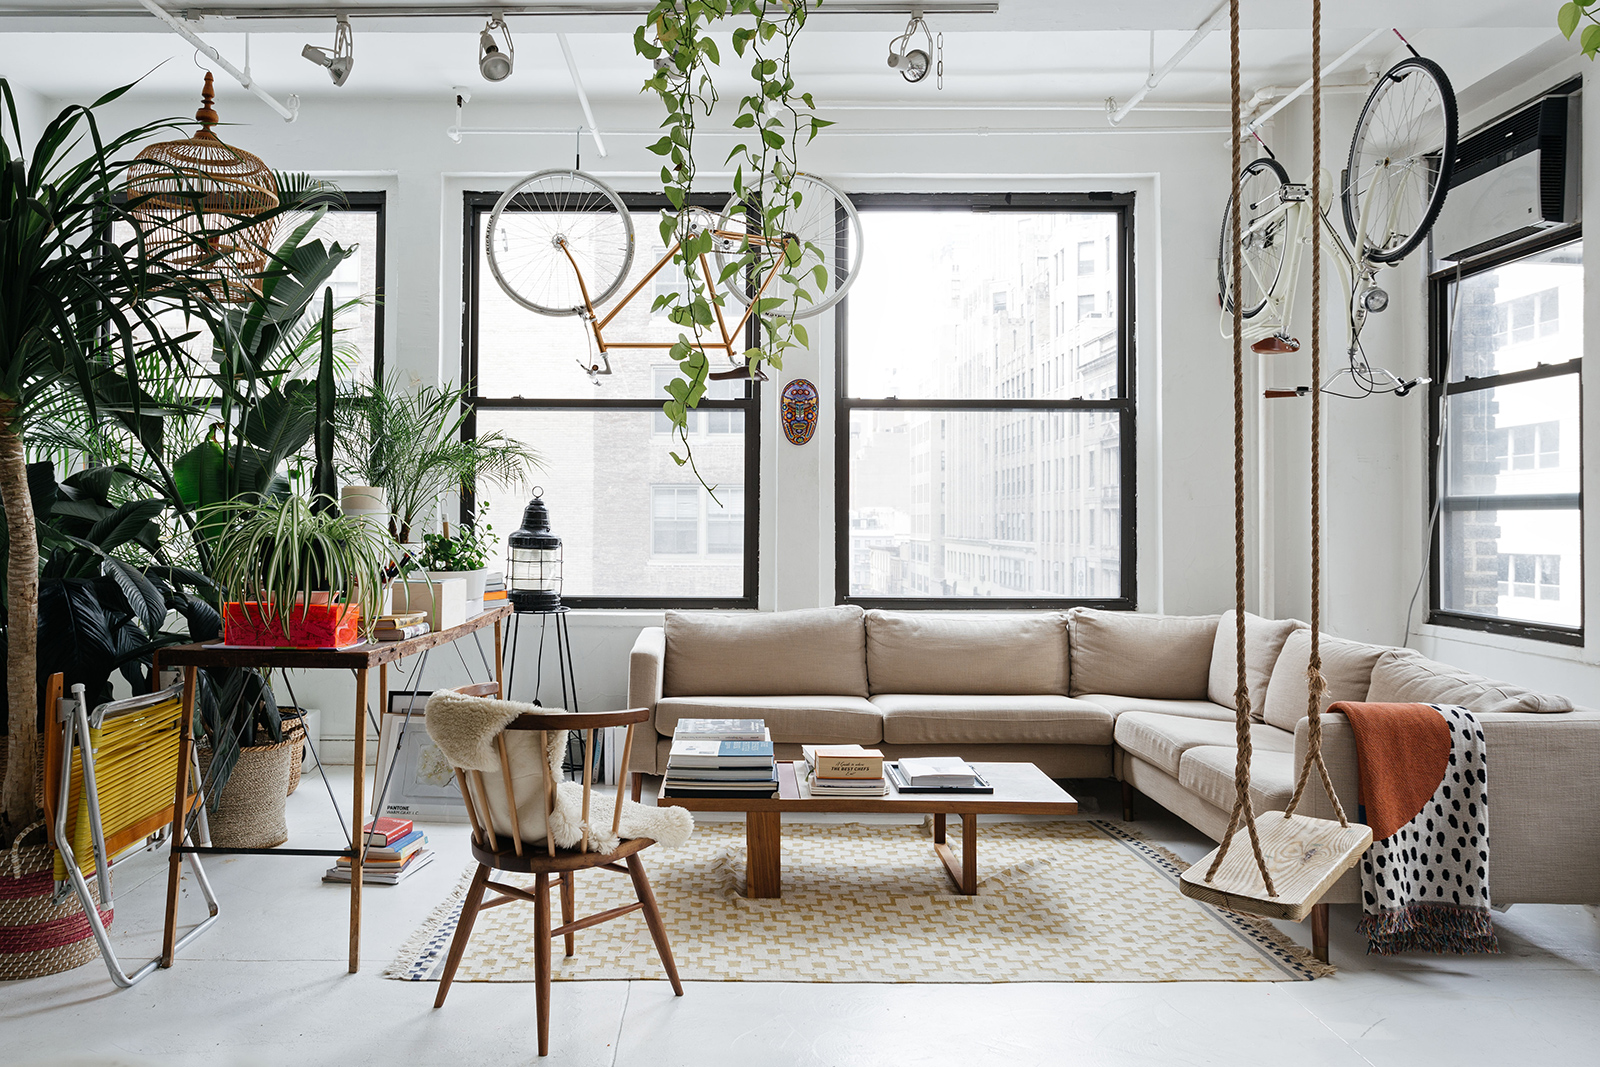 5 Of The Best New York Apartments To Rent